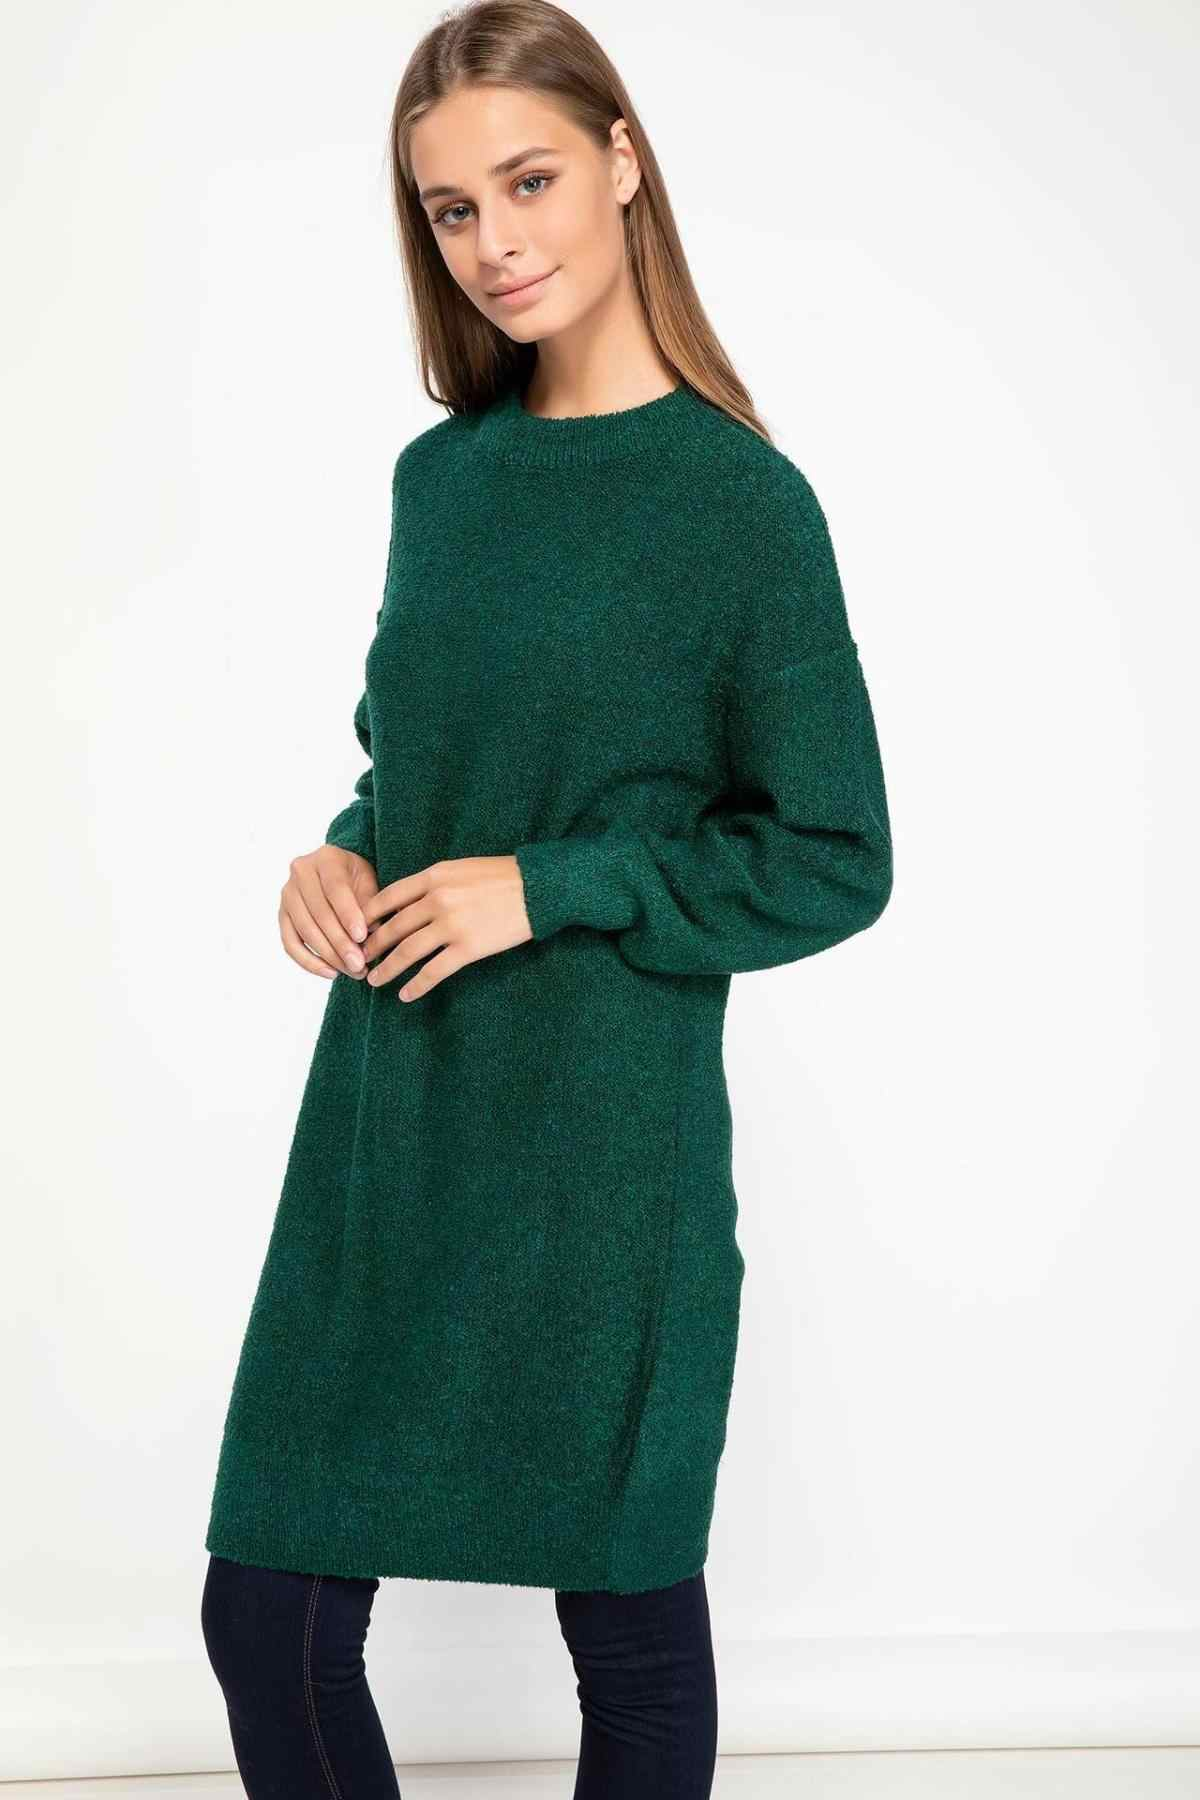 DeFacto Women Autumn Long Pullover Hoodies Pure Color Yellow Green Long Sleeve Casual Female Tops Tunic-J0409AZ18WN